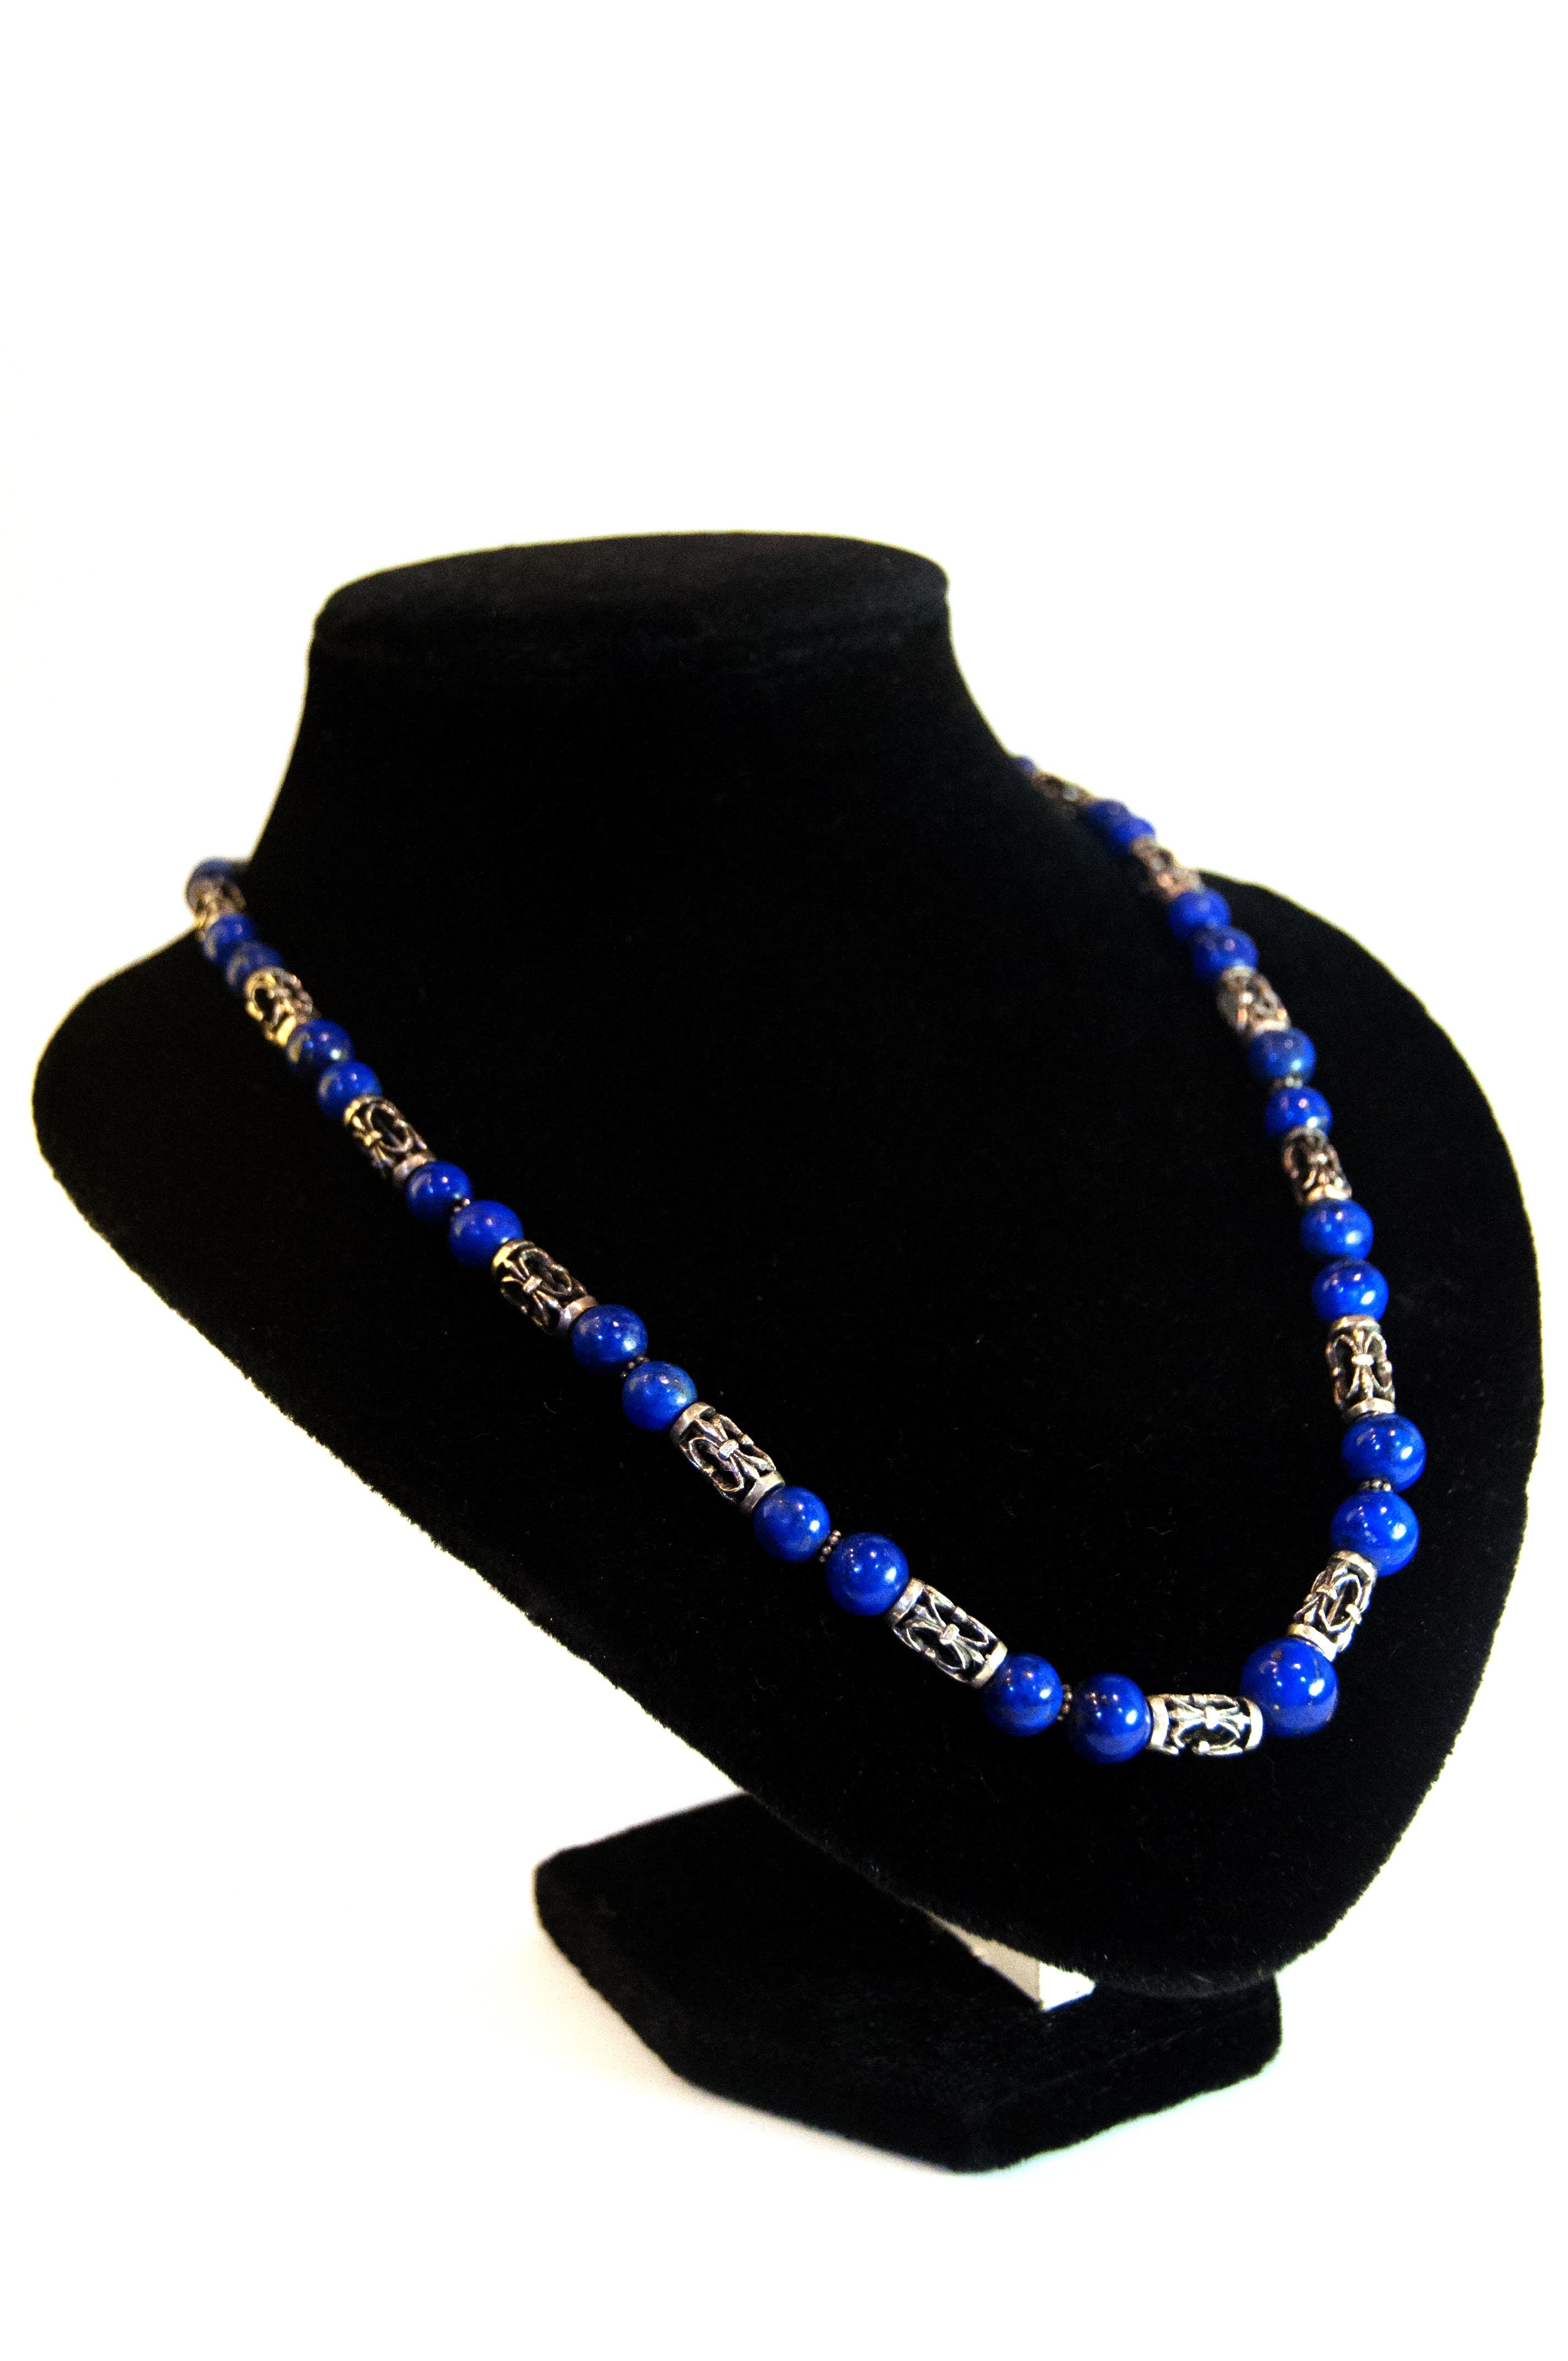 Jewelry Necklace Silver Rnd Torquoise Beads Cut-out Beads 21D 64.4